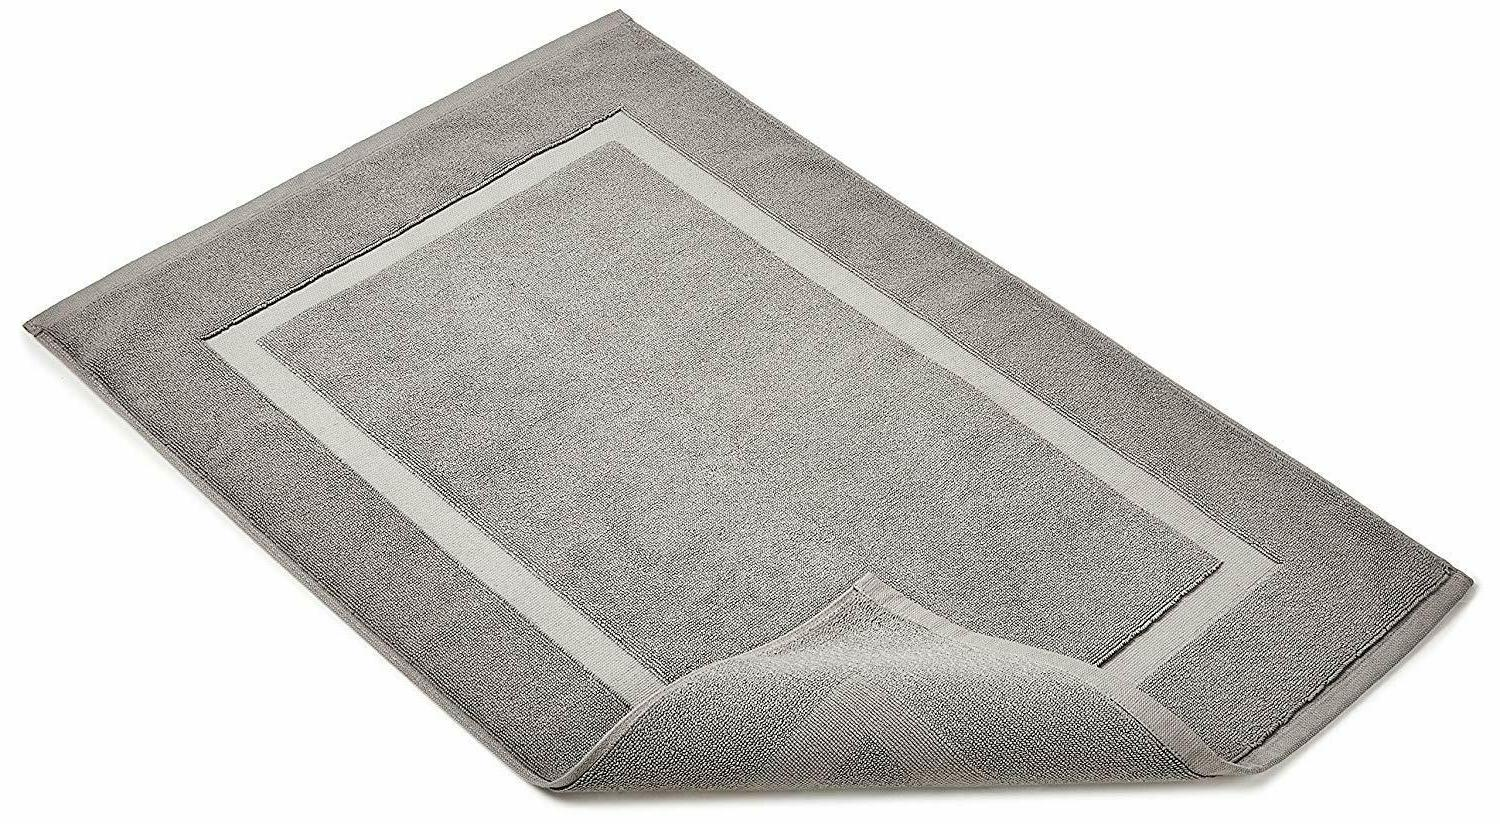 Soft Fast Drying Towel Like Bathroom Machine 20x31 Grey